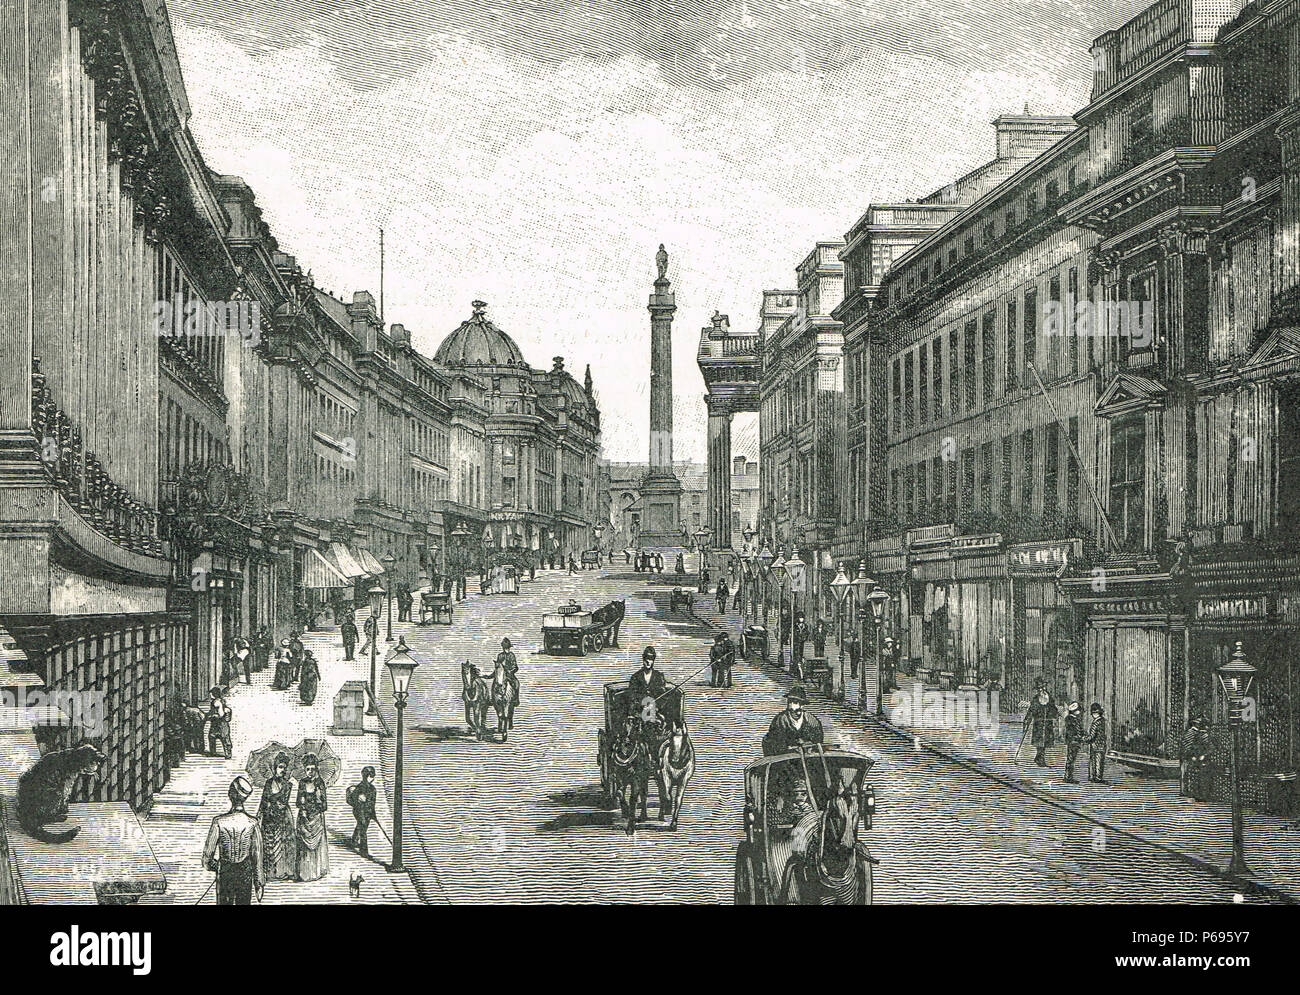 Grey Street, Newcastle upon Tyne, 1830s, named after prime minister Earl Grey, looking towards Grey's monument, erected after Great Reform Act of 1832 - Stock Image